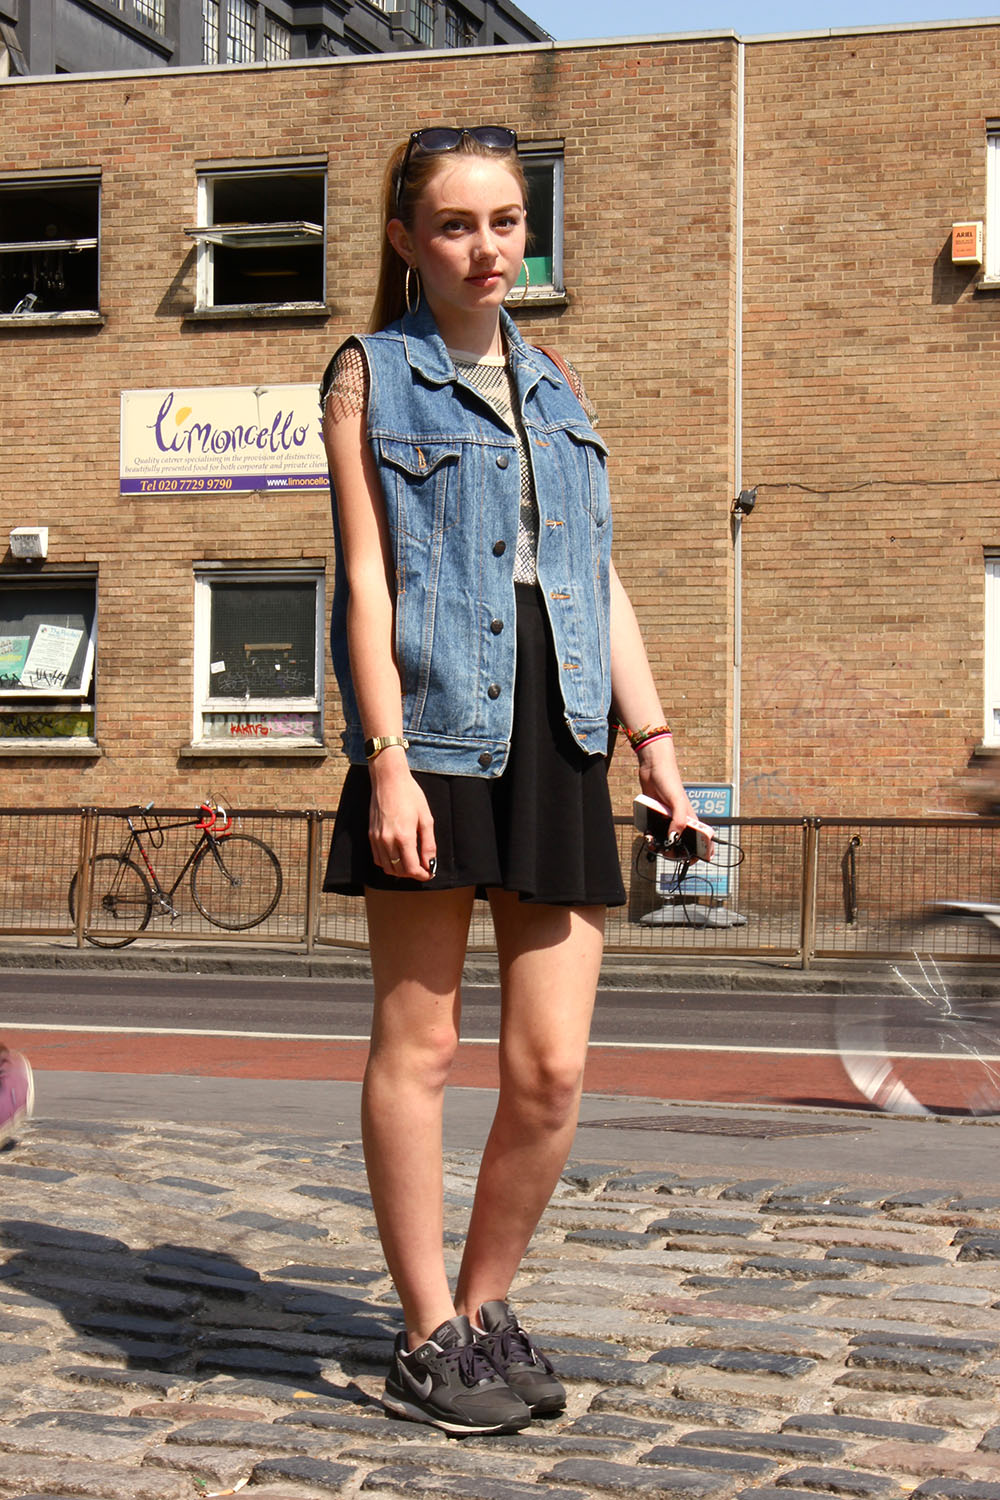 London street style | July 2013